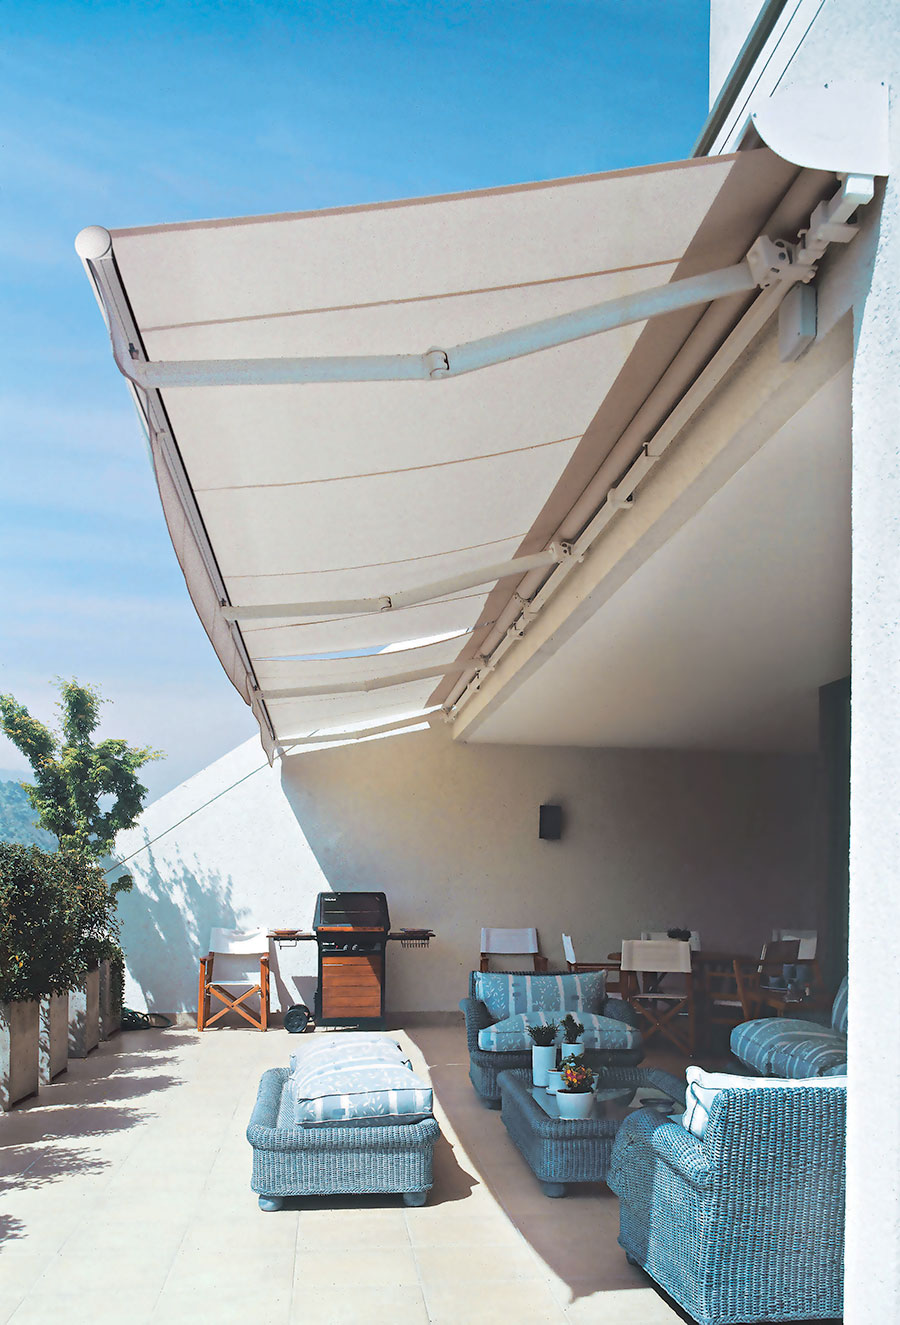 Global 2020 Folding Arm Awning